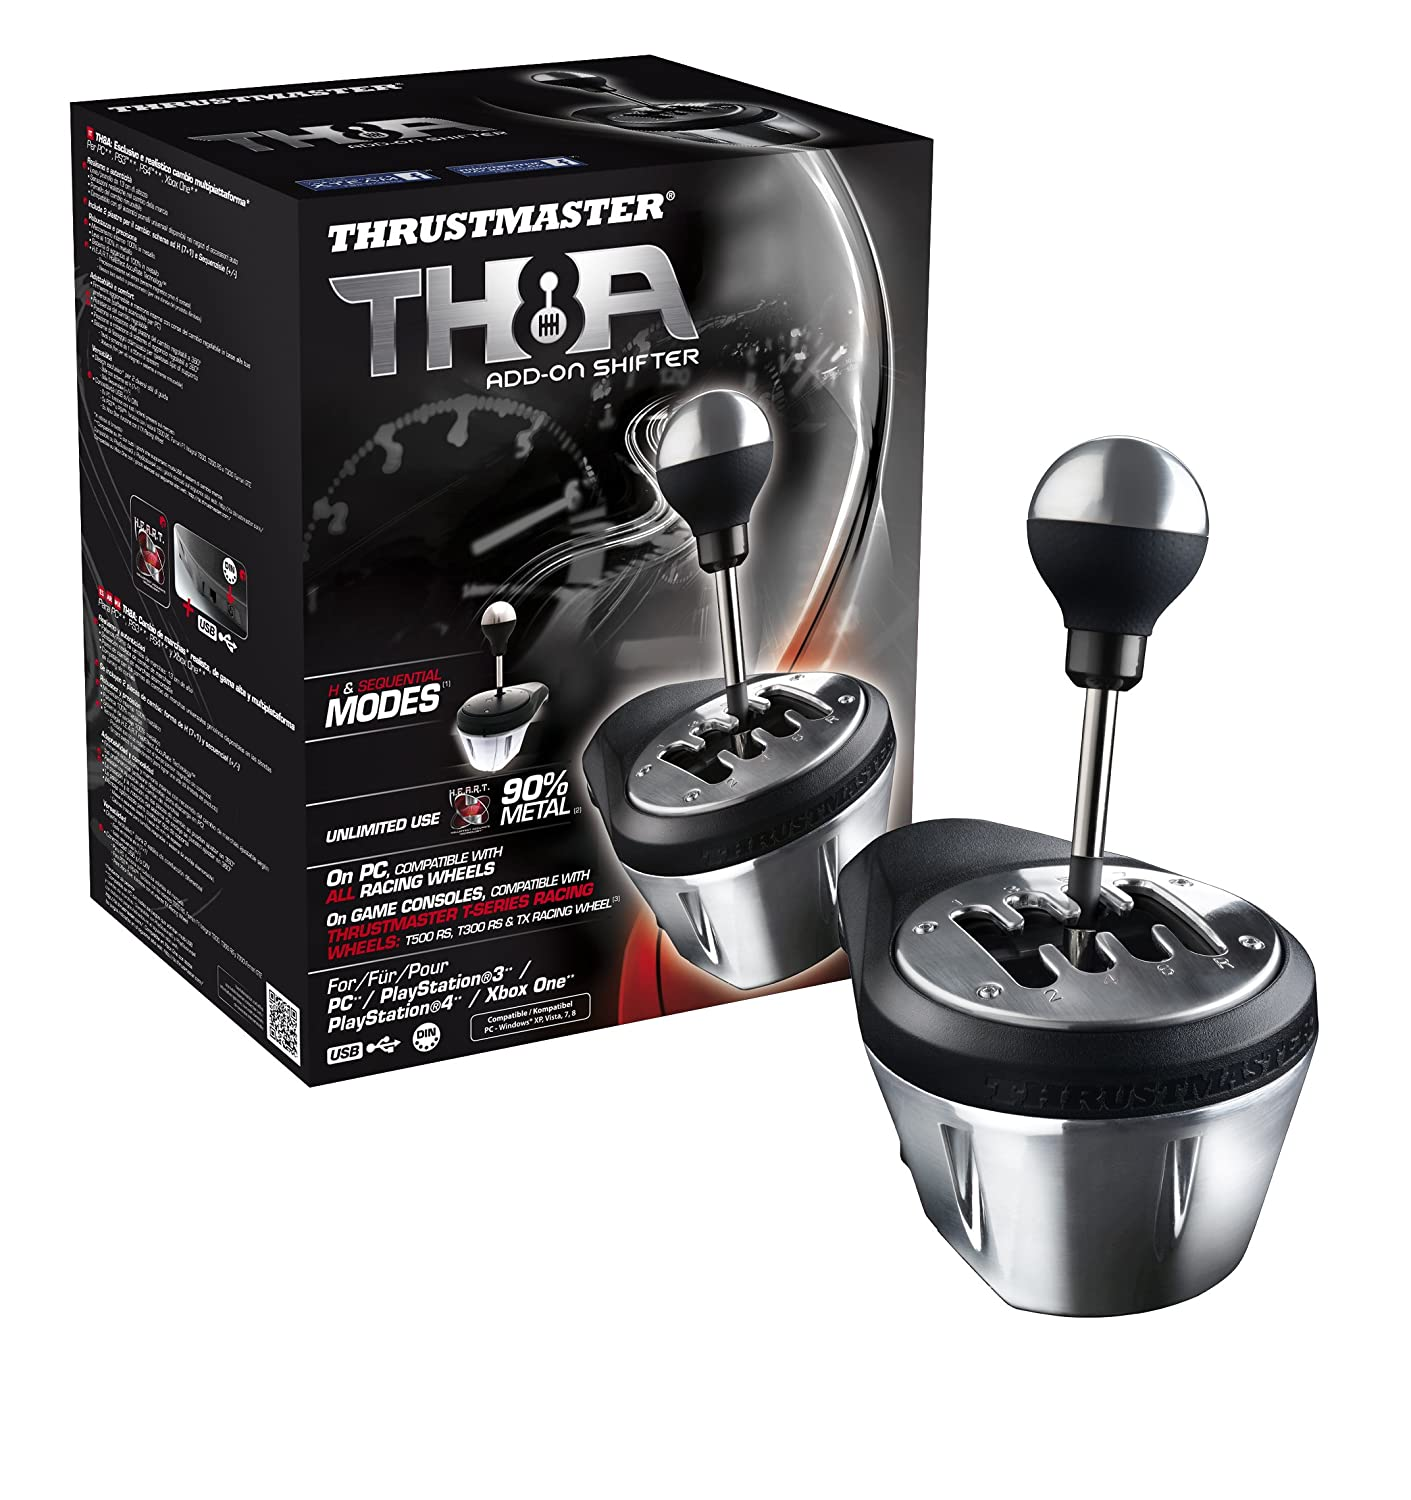 Top Add On Accessories For The Thrustmaster Tx Xbox One